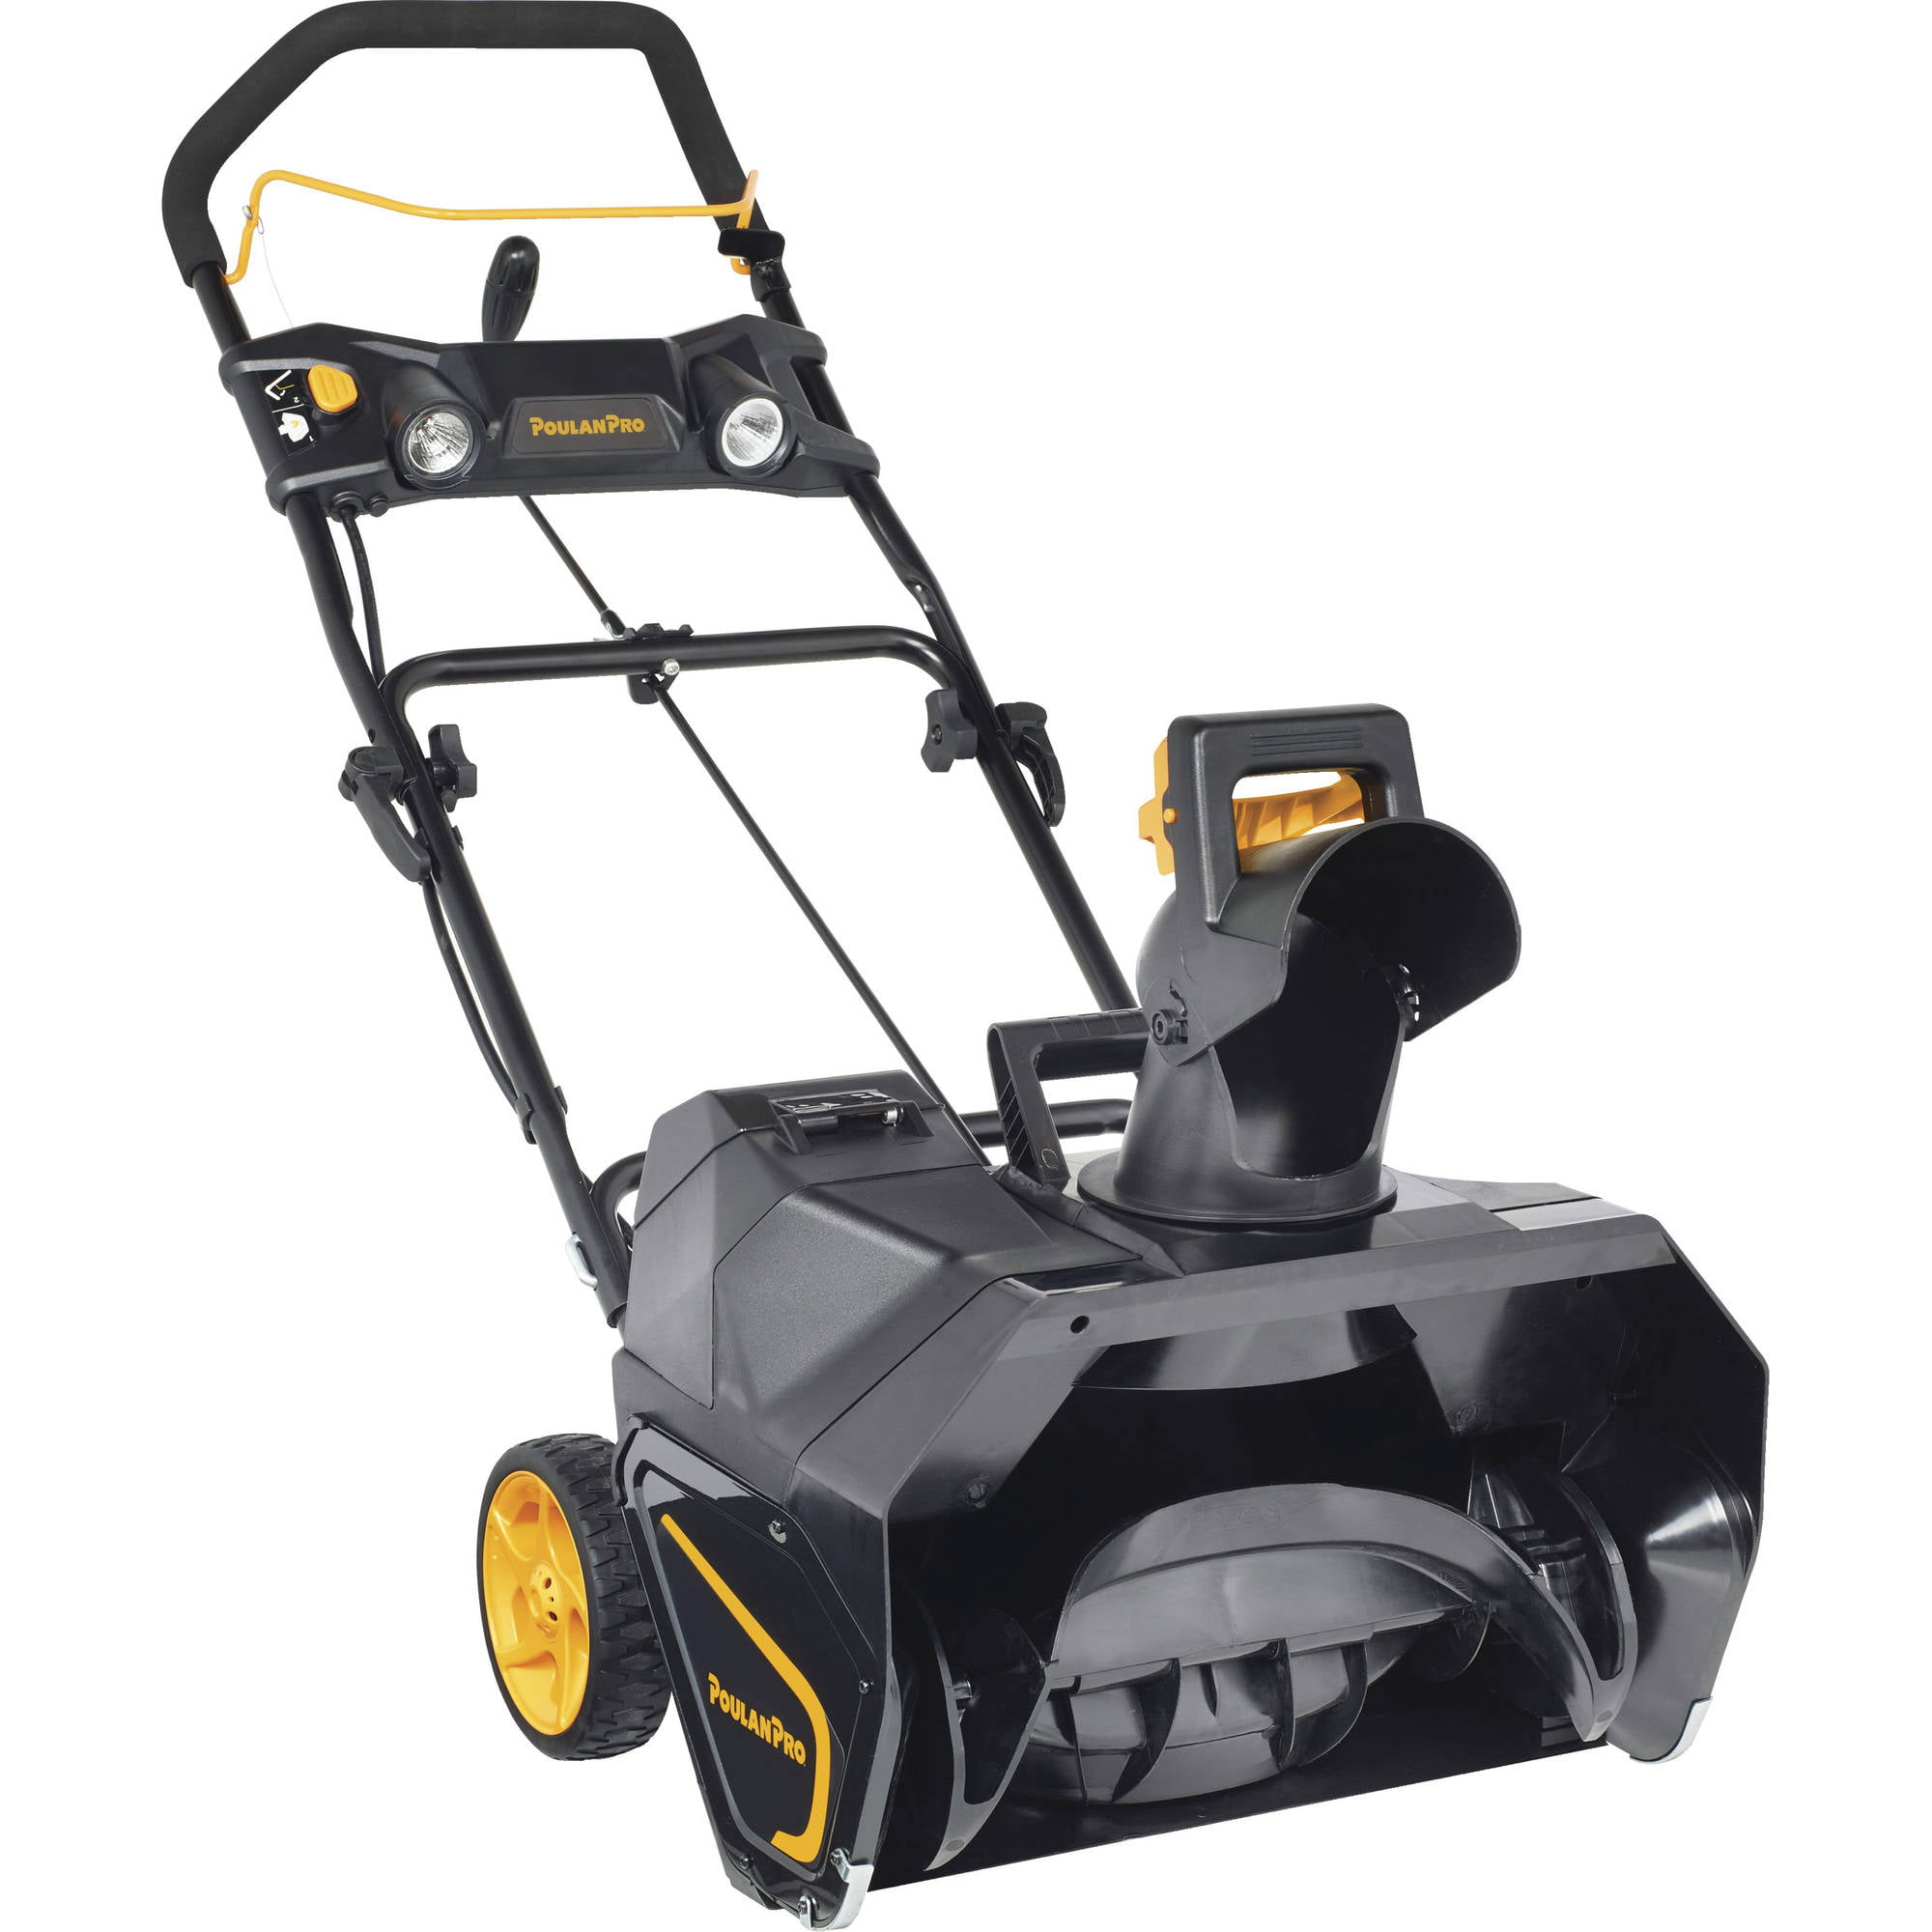 Poulan Pro 40-Volt Lithium-Ion Rechargeable Battery Snow Thrower by Husqvarna